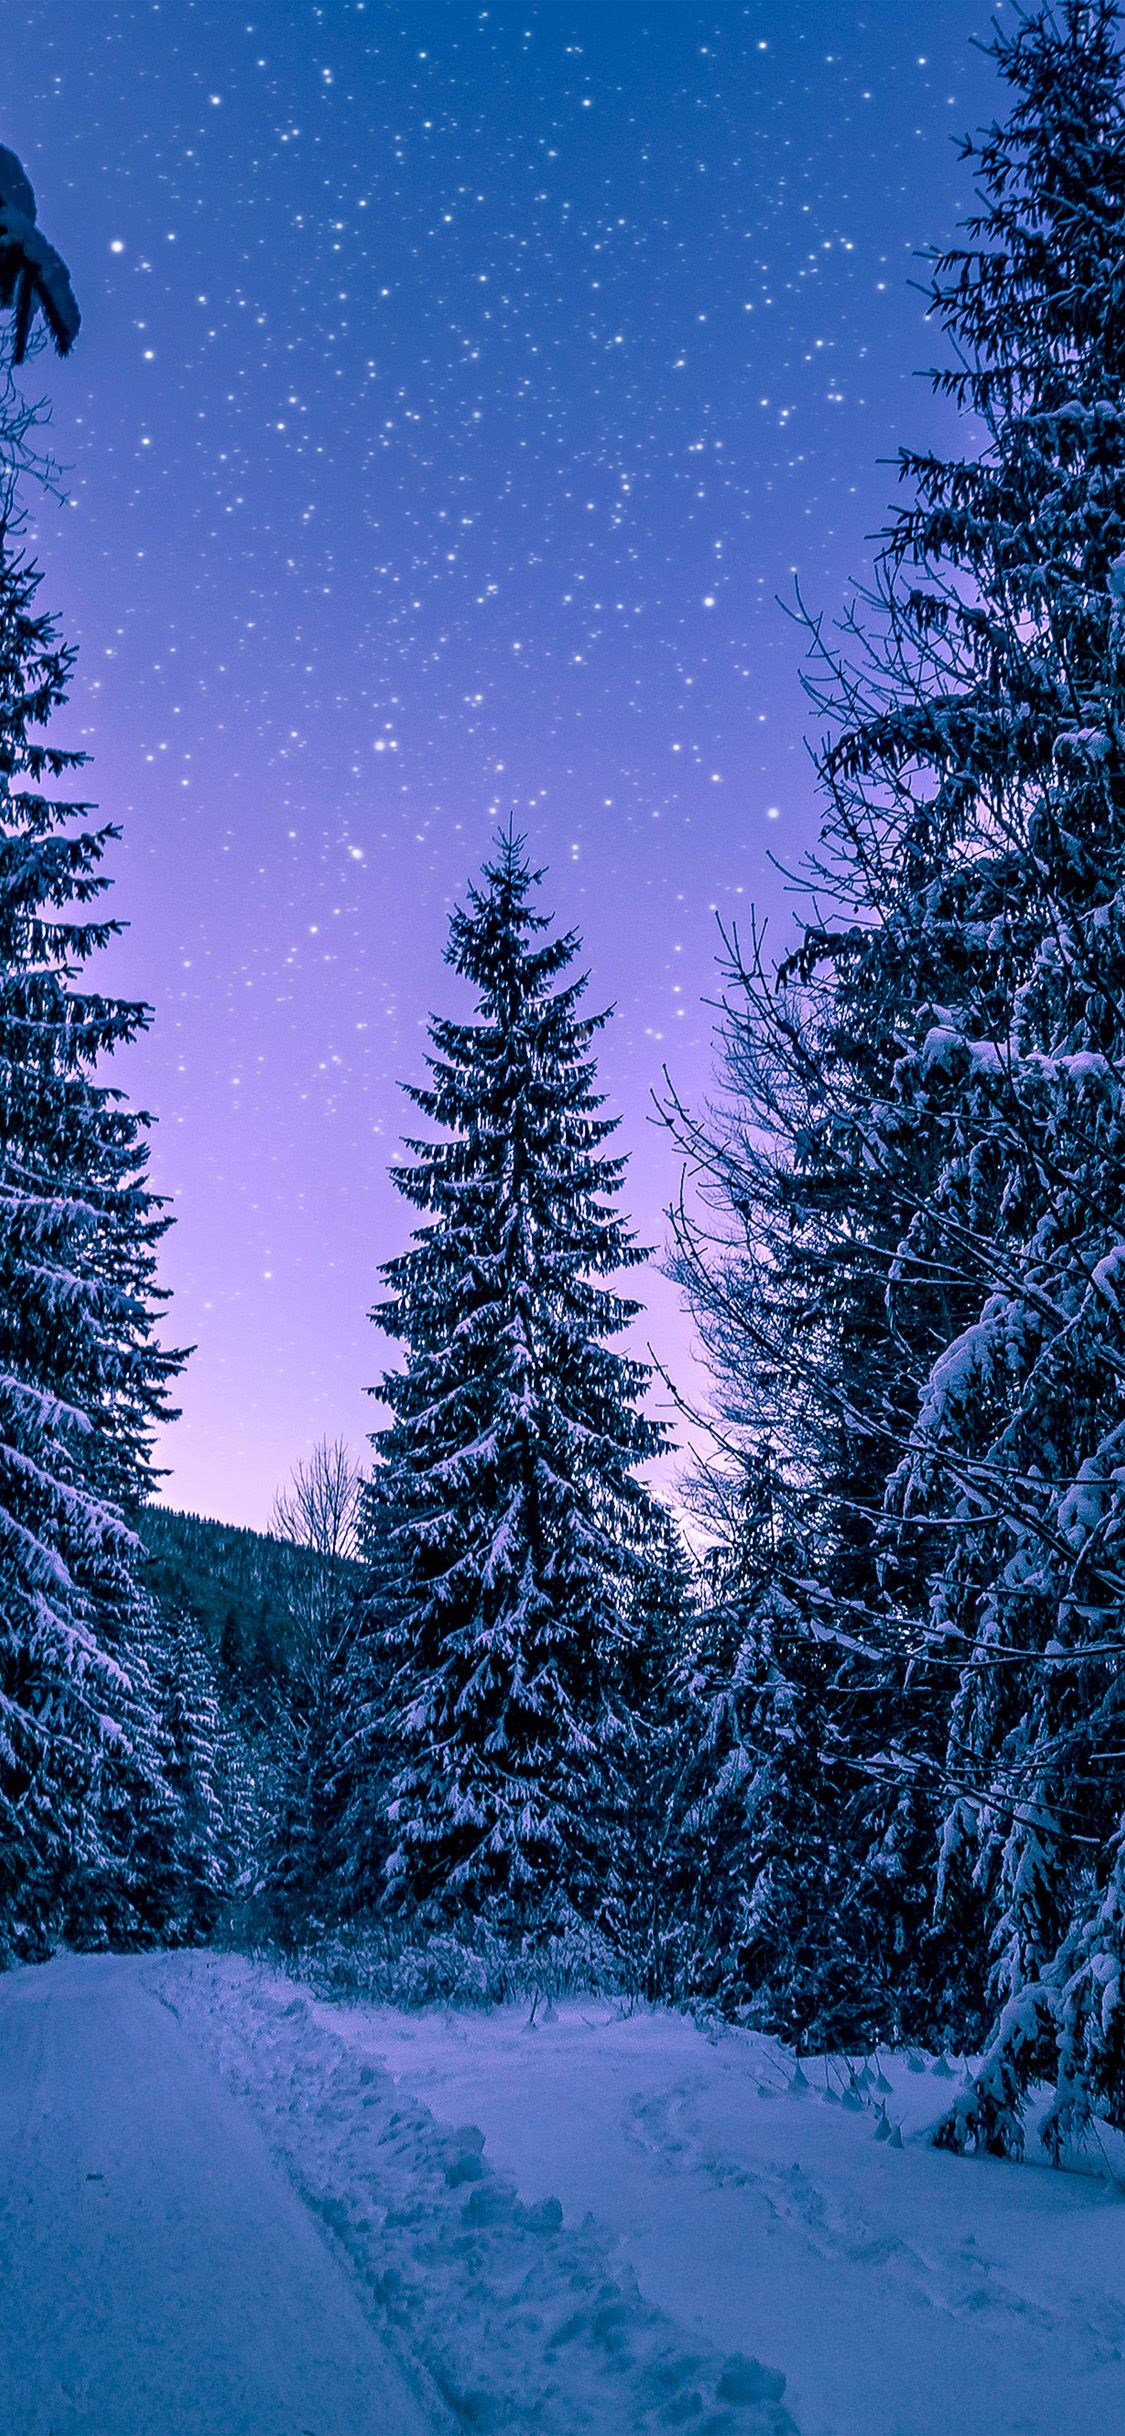 iPhoneX wallpaper nx97snowwinterwoodtreeroadnight